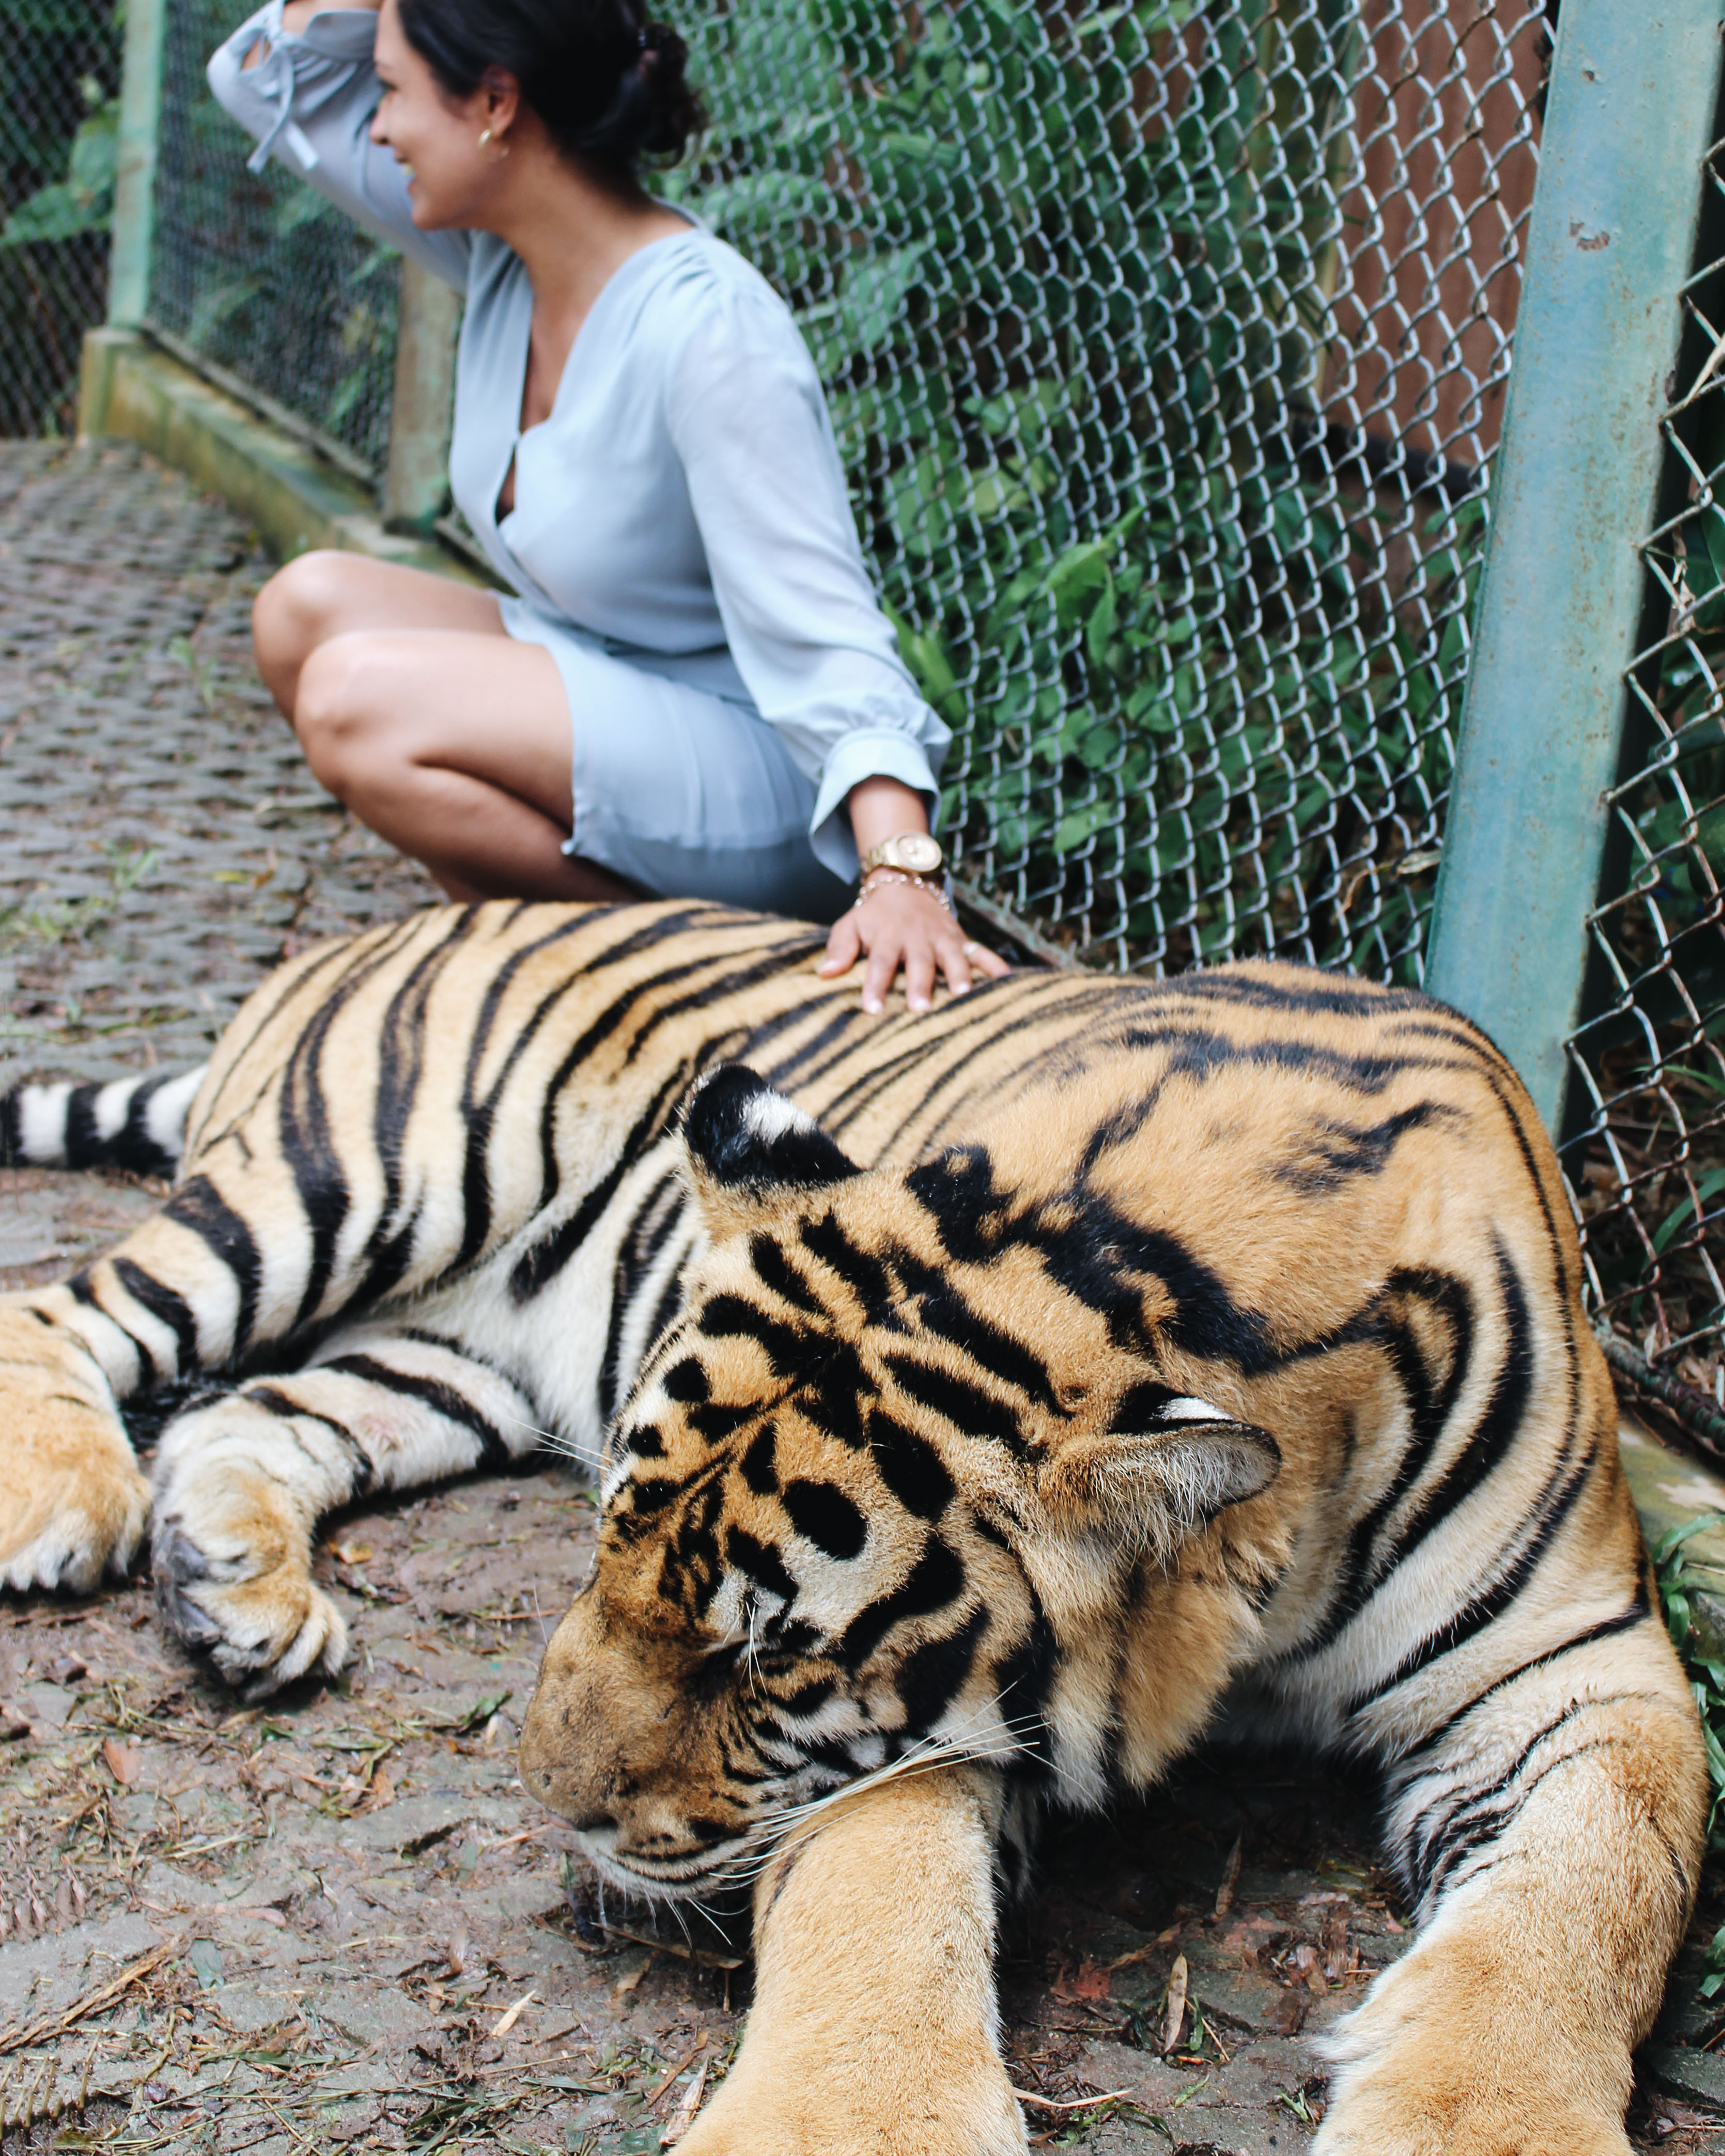 Tiger Kingdom, Phuket Thailand